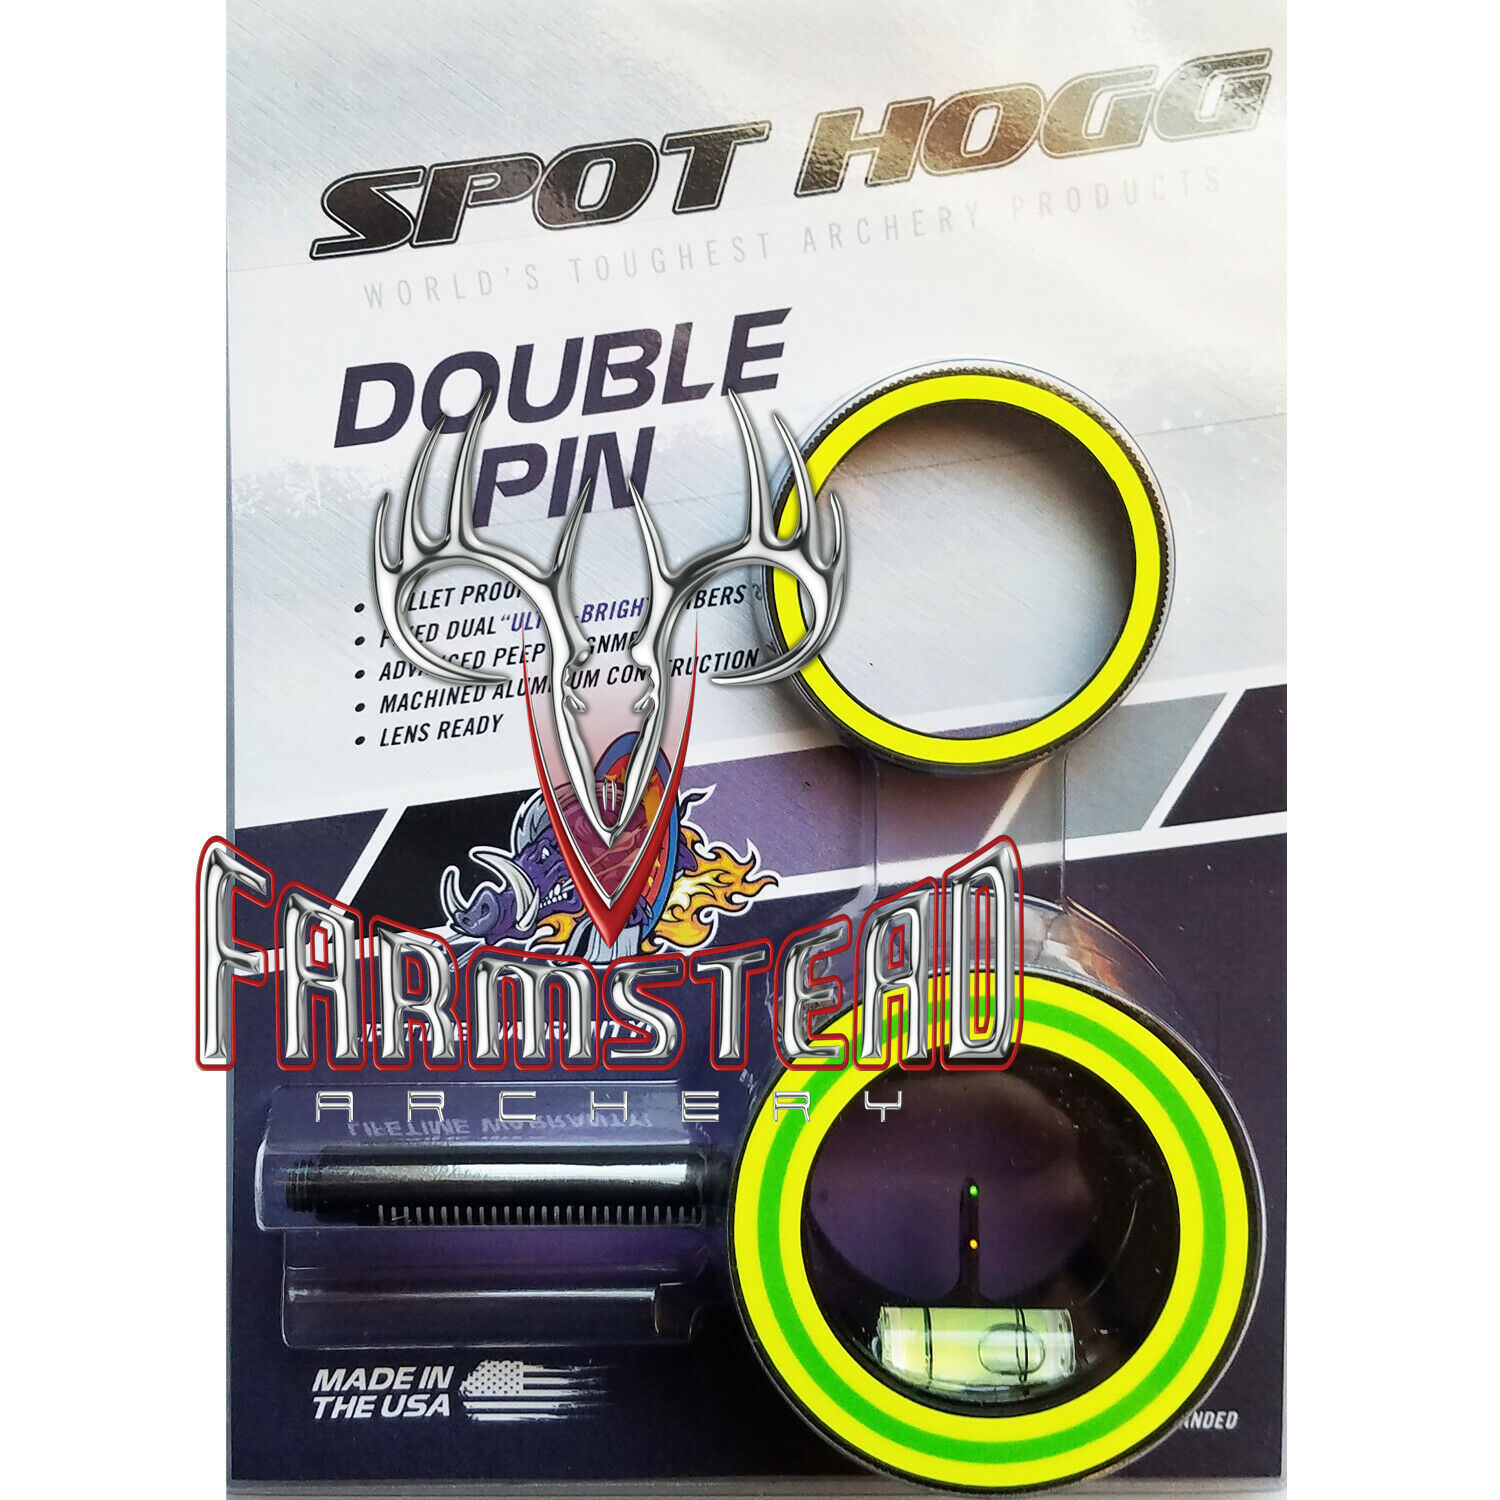 Spot Hogg Sight Head Double Pin .010 Left Hand w  Alignment Rings PG2LH10 00793